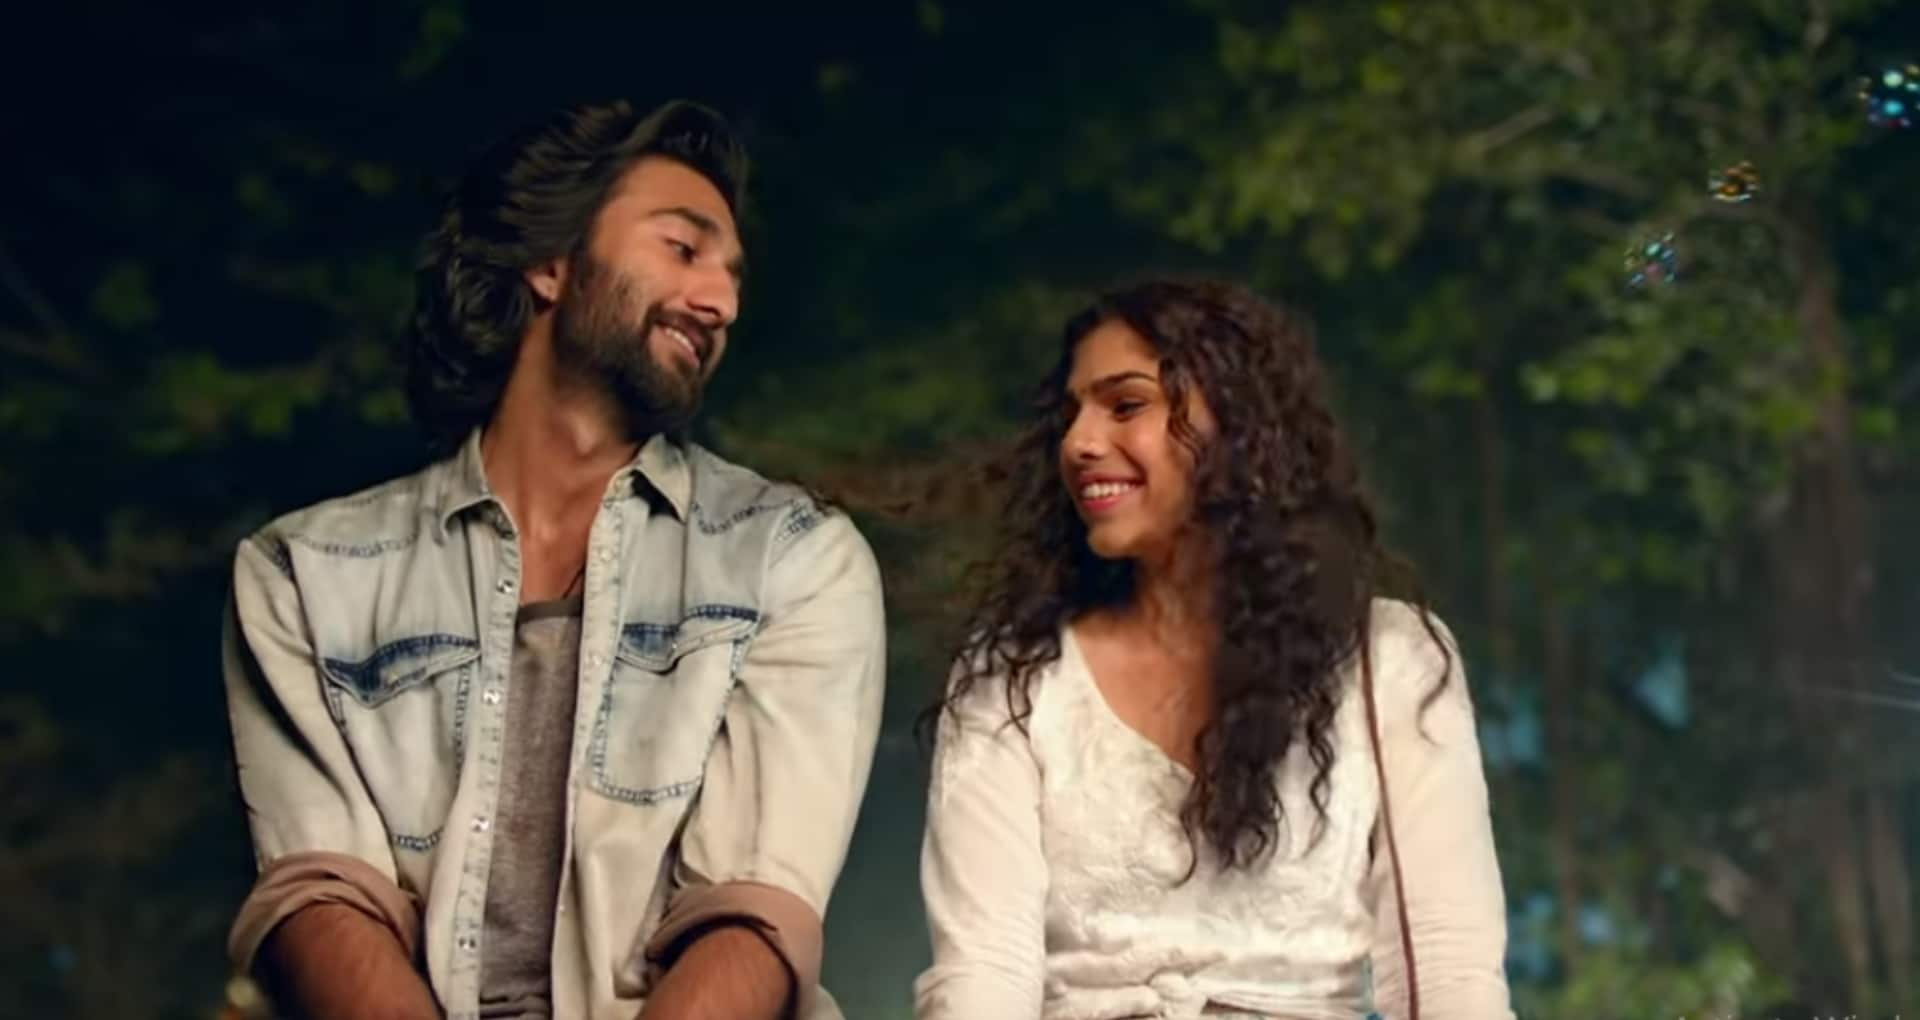 Malaal Movie Review: Malaal Is Not The Worst Film Ever, But It Might Just Be The Most Dated And Boring One This Year